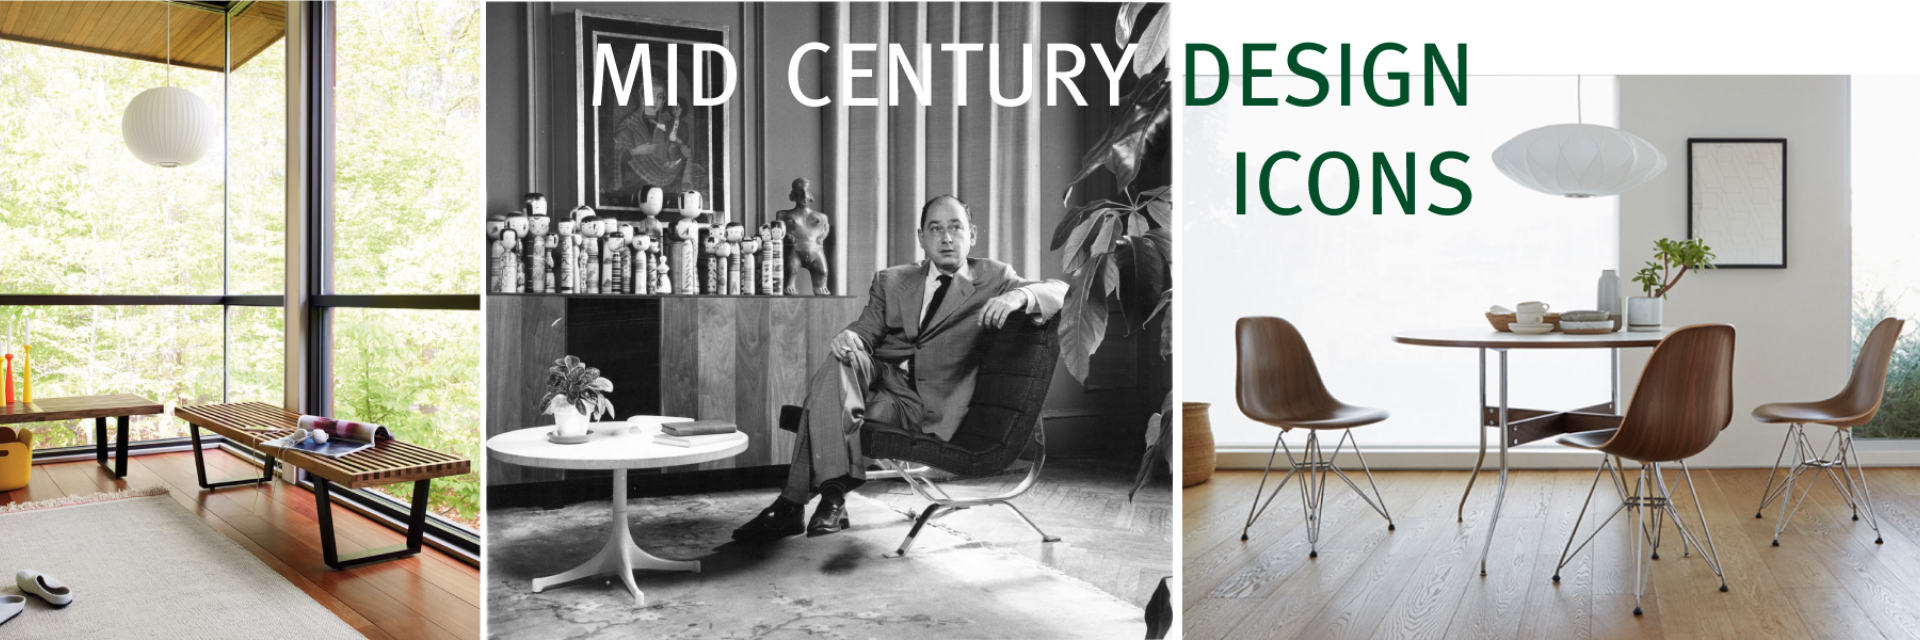 Mid Century Design Icons - George Nelson